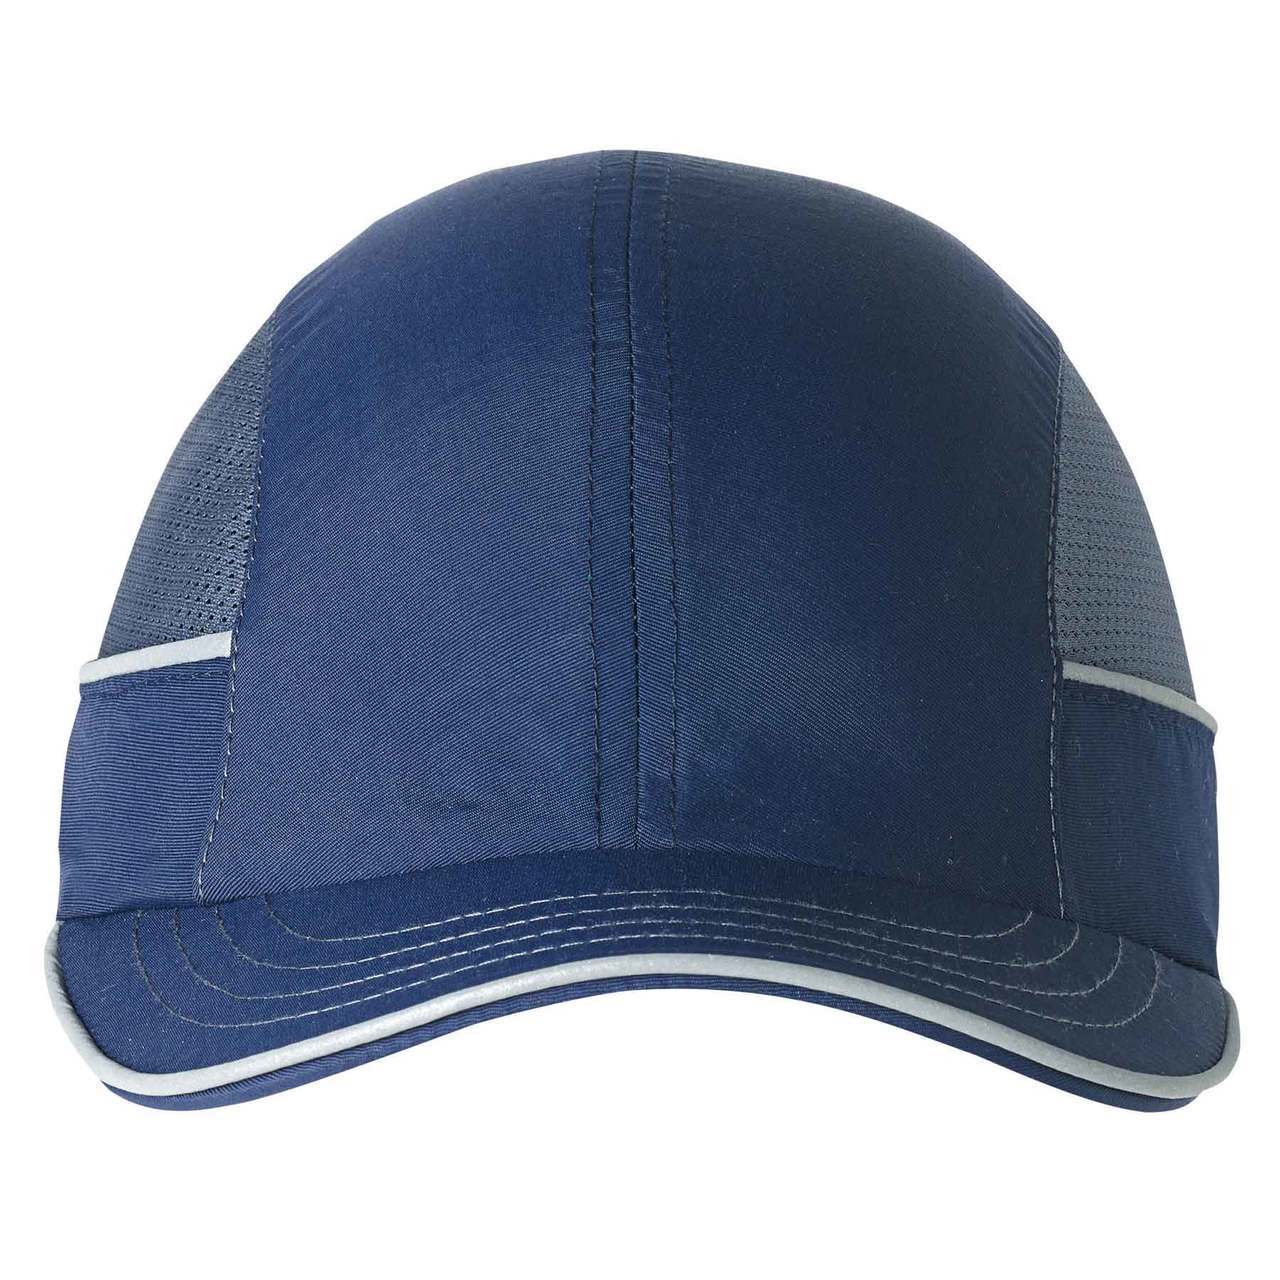 cc594336a51 Ergodyne Skullerz 8950 Navy Bump Cap Short Brim. Price   17.70. Image 1.  Larger   More Photos